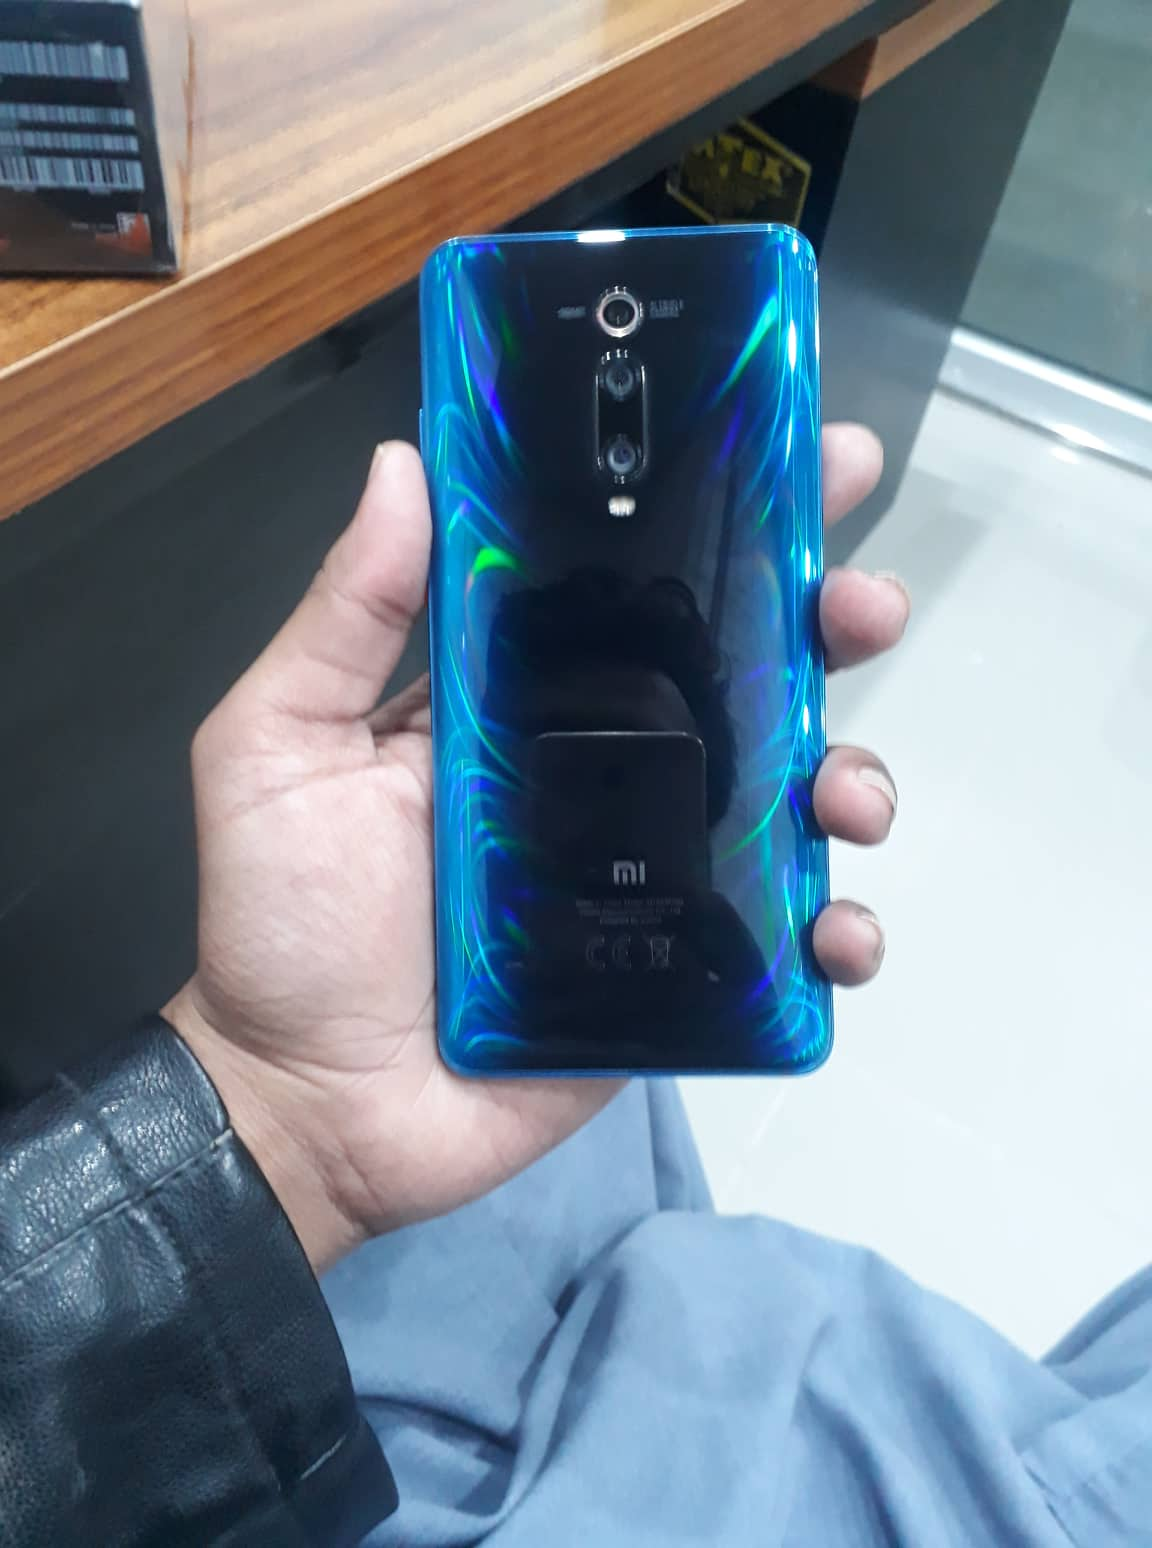 Xiaomi MI 9T pta approved just box opened new - photo 3